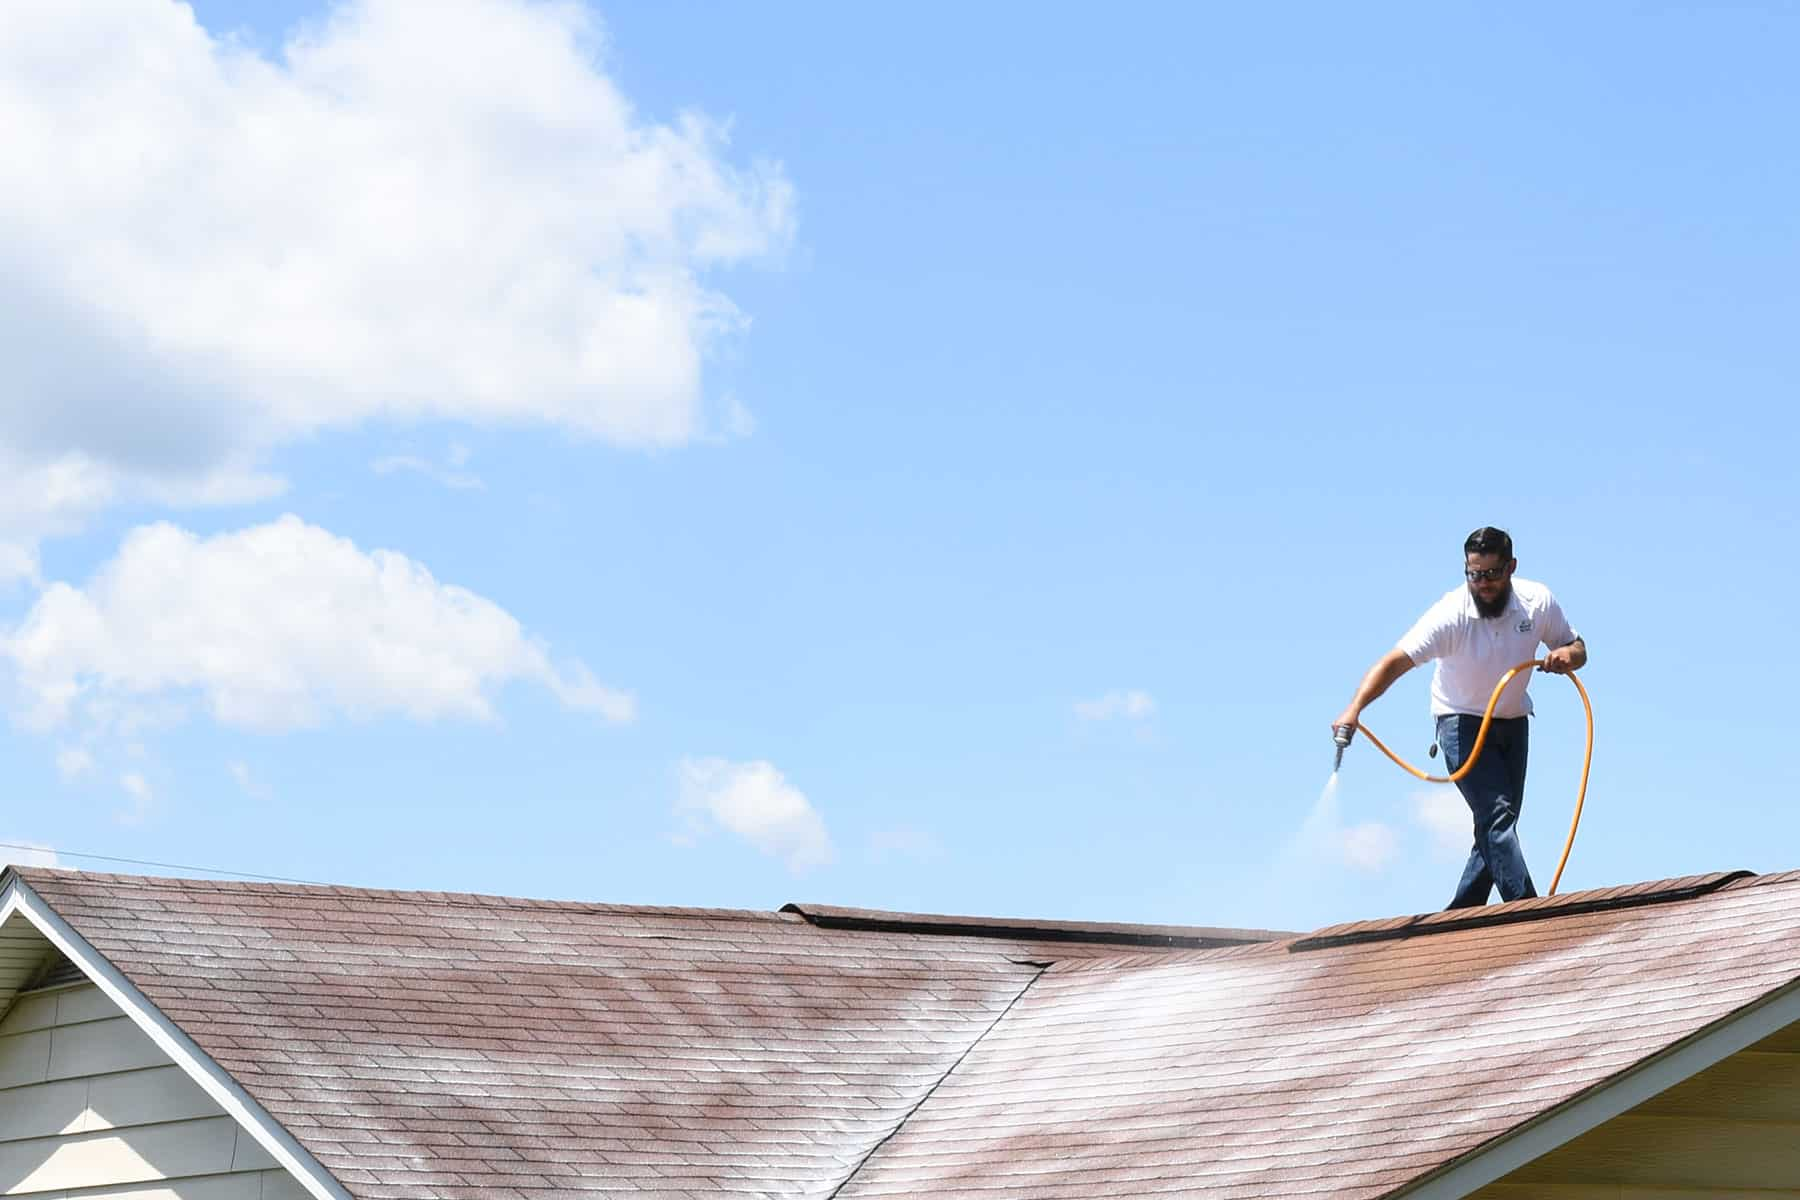 Tech working on a roof